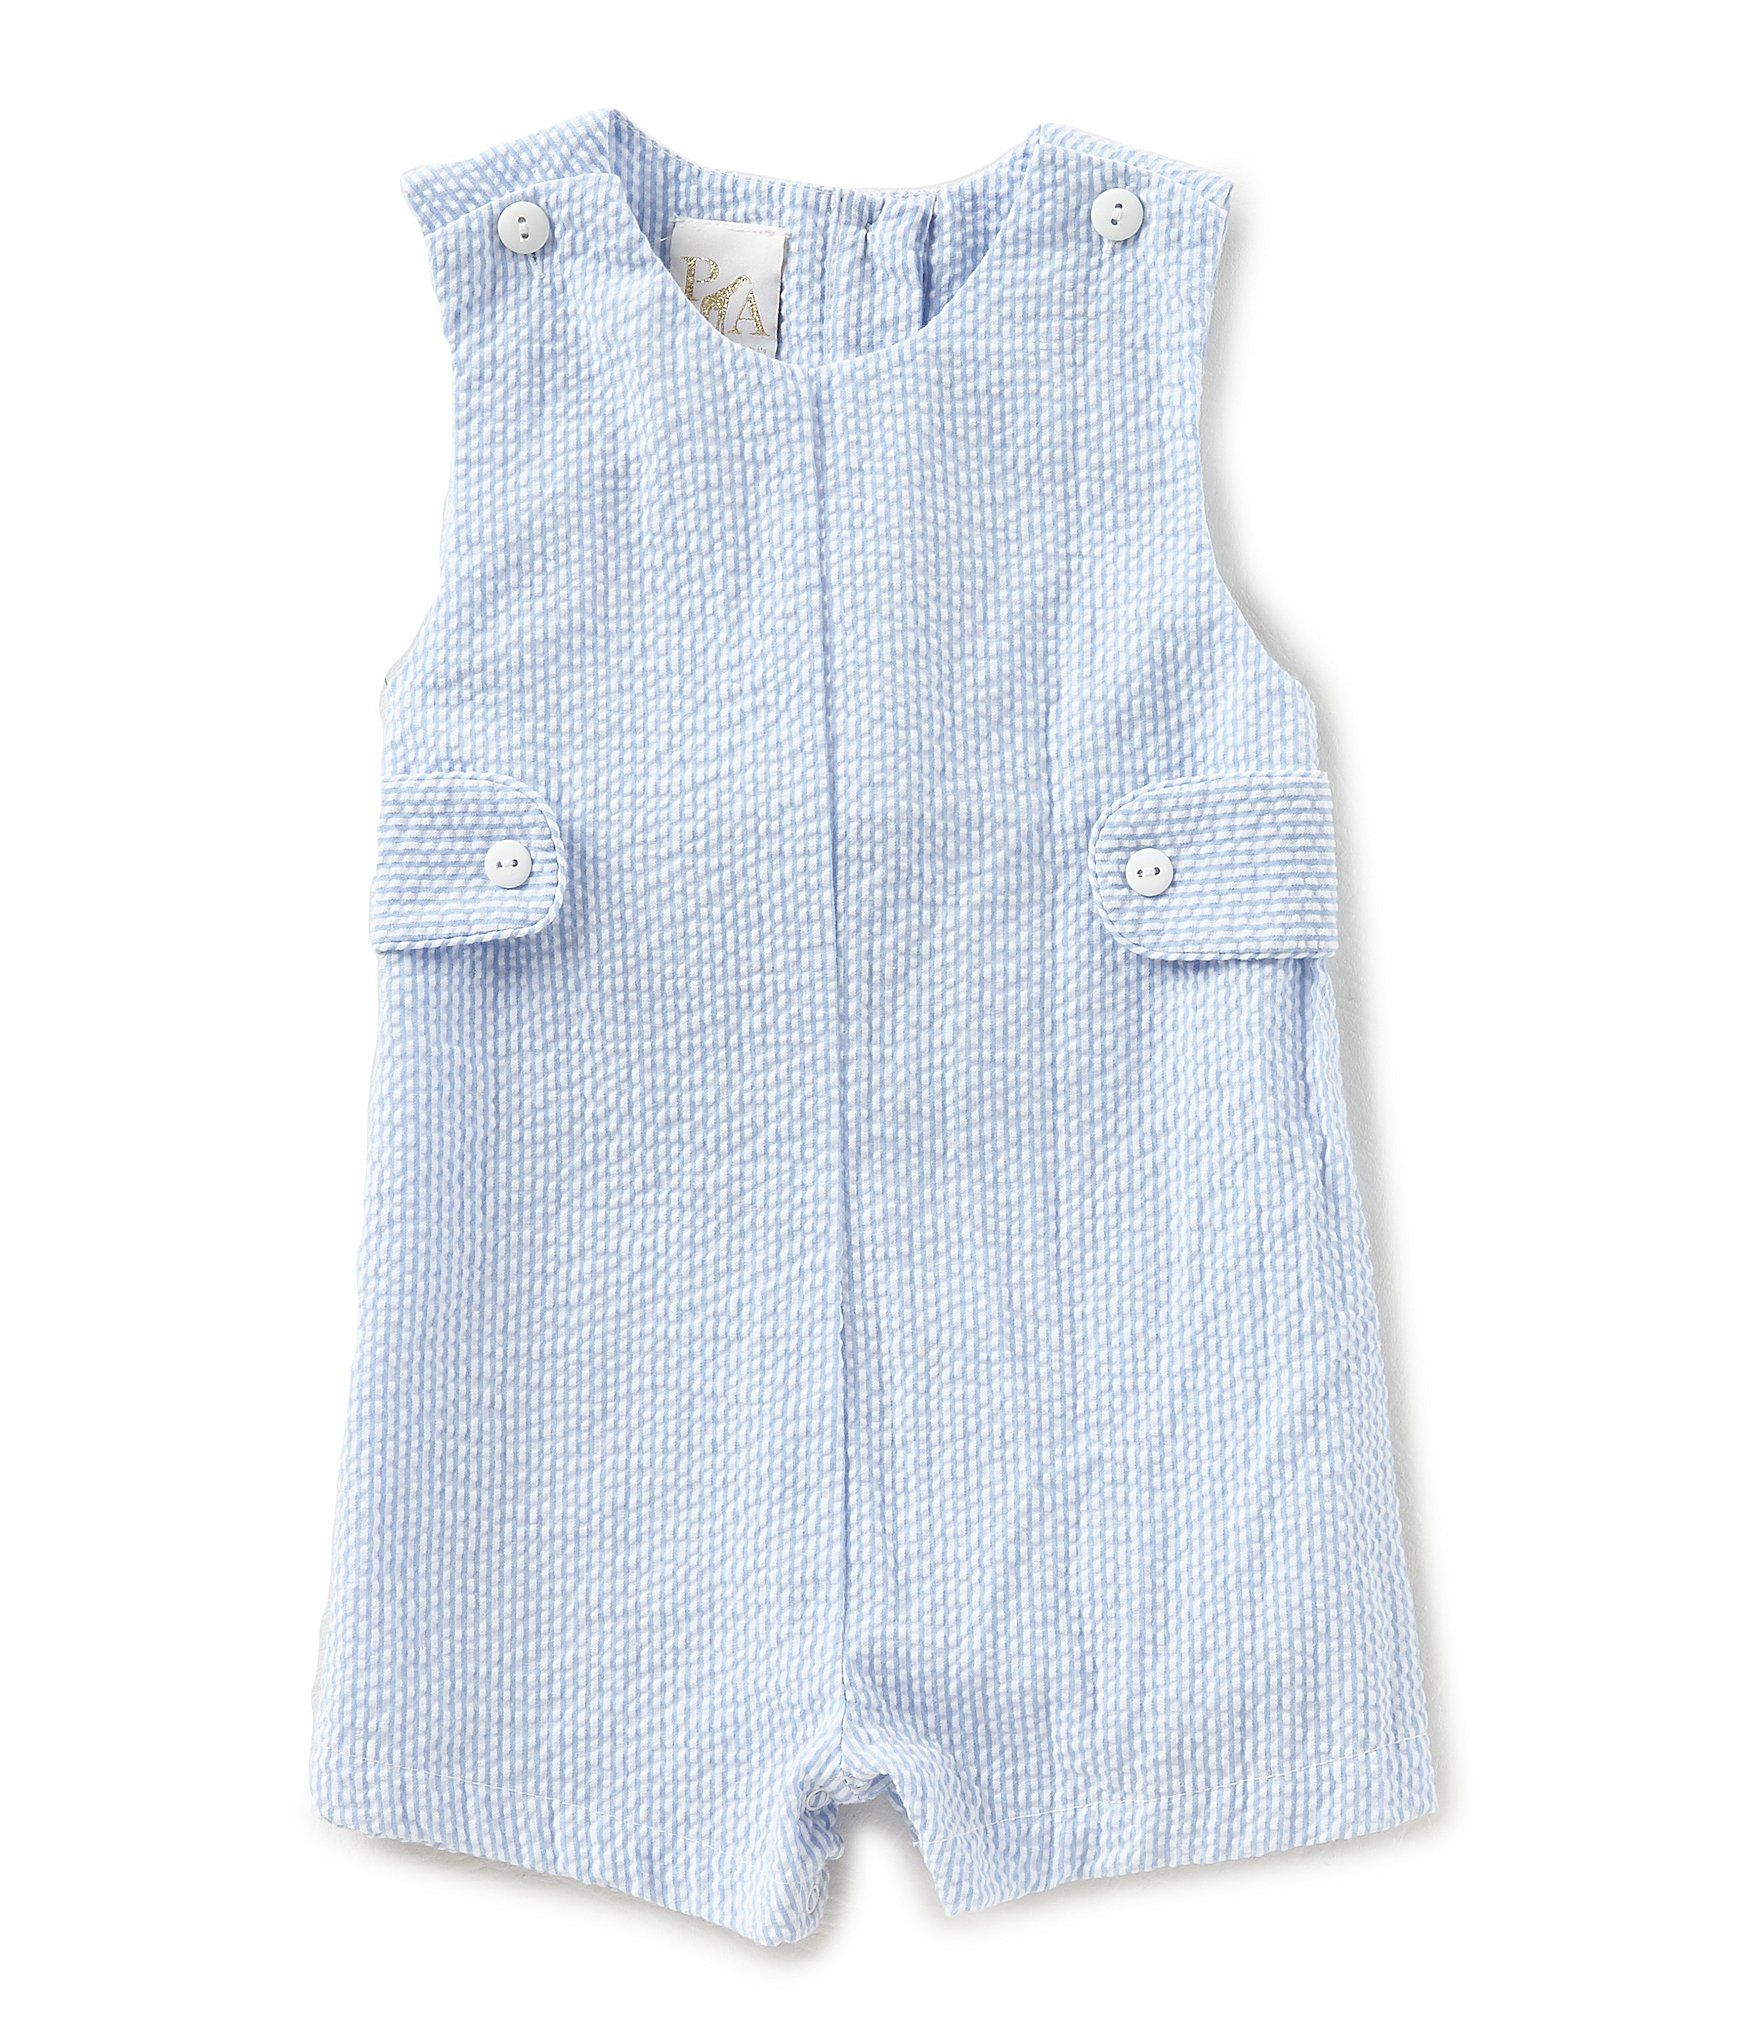 cb38d84672c4 Shop for Petit Ami Baby Boys 3-24 Months Seersucker Shortall at  Dillards.com. Visit Dillards.com to find clothing